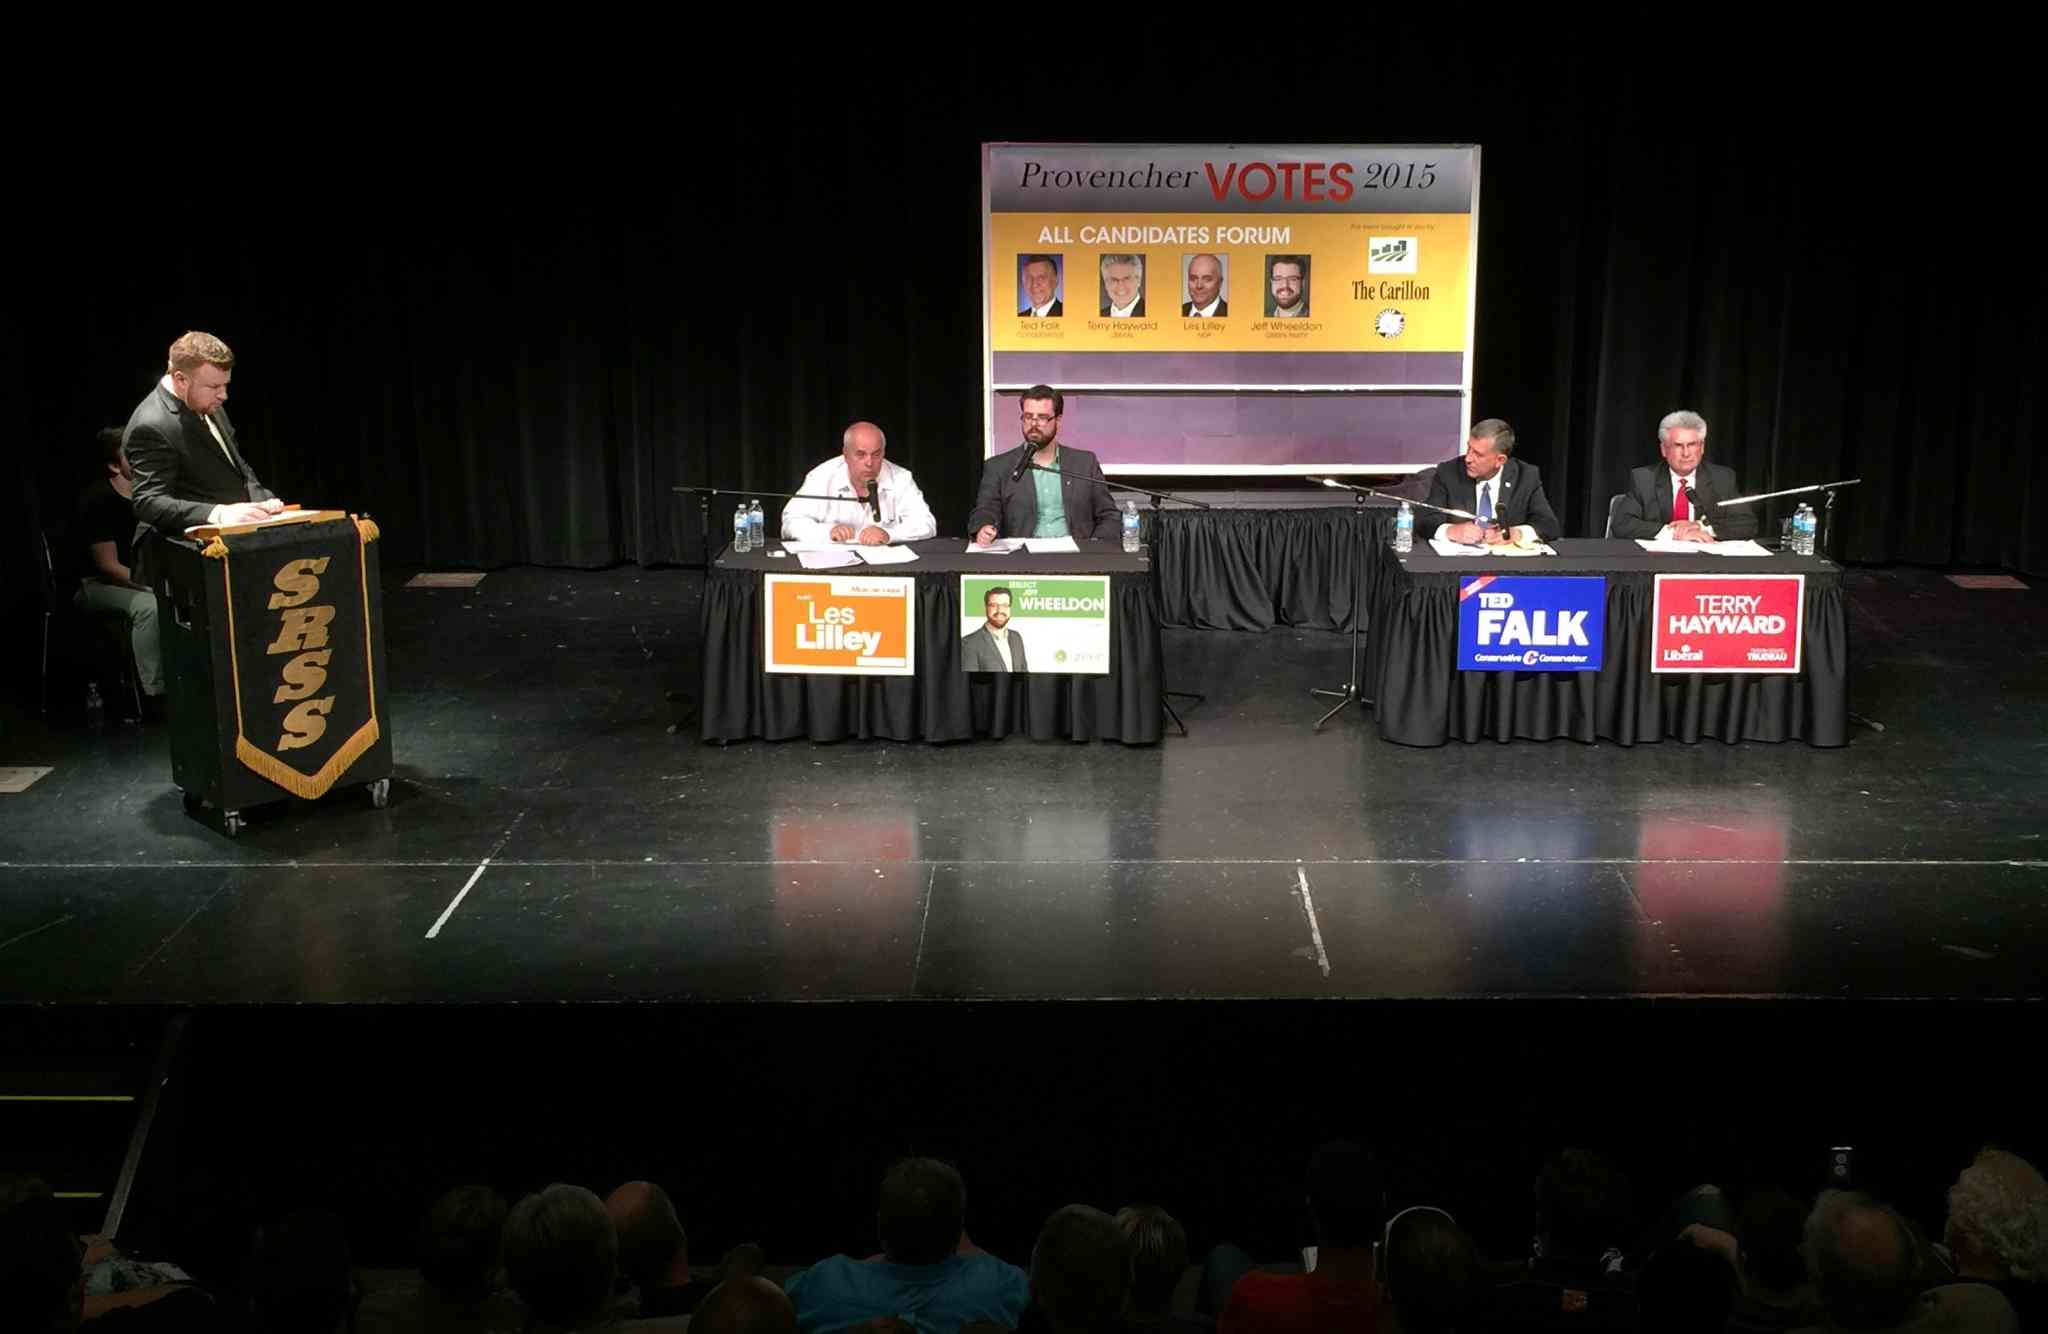 From left: NDP candidate Les Lilley, Jeff Wheeldon of the Green Party, Conservative candidate Ted Falk and Liberal candidate Terry Hayward, at the Provencher all-candidates forum Thursday evening.